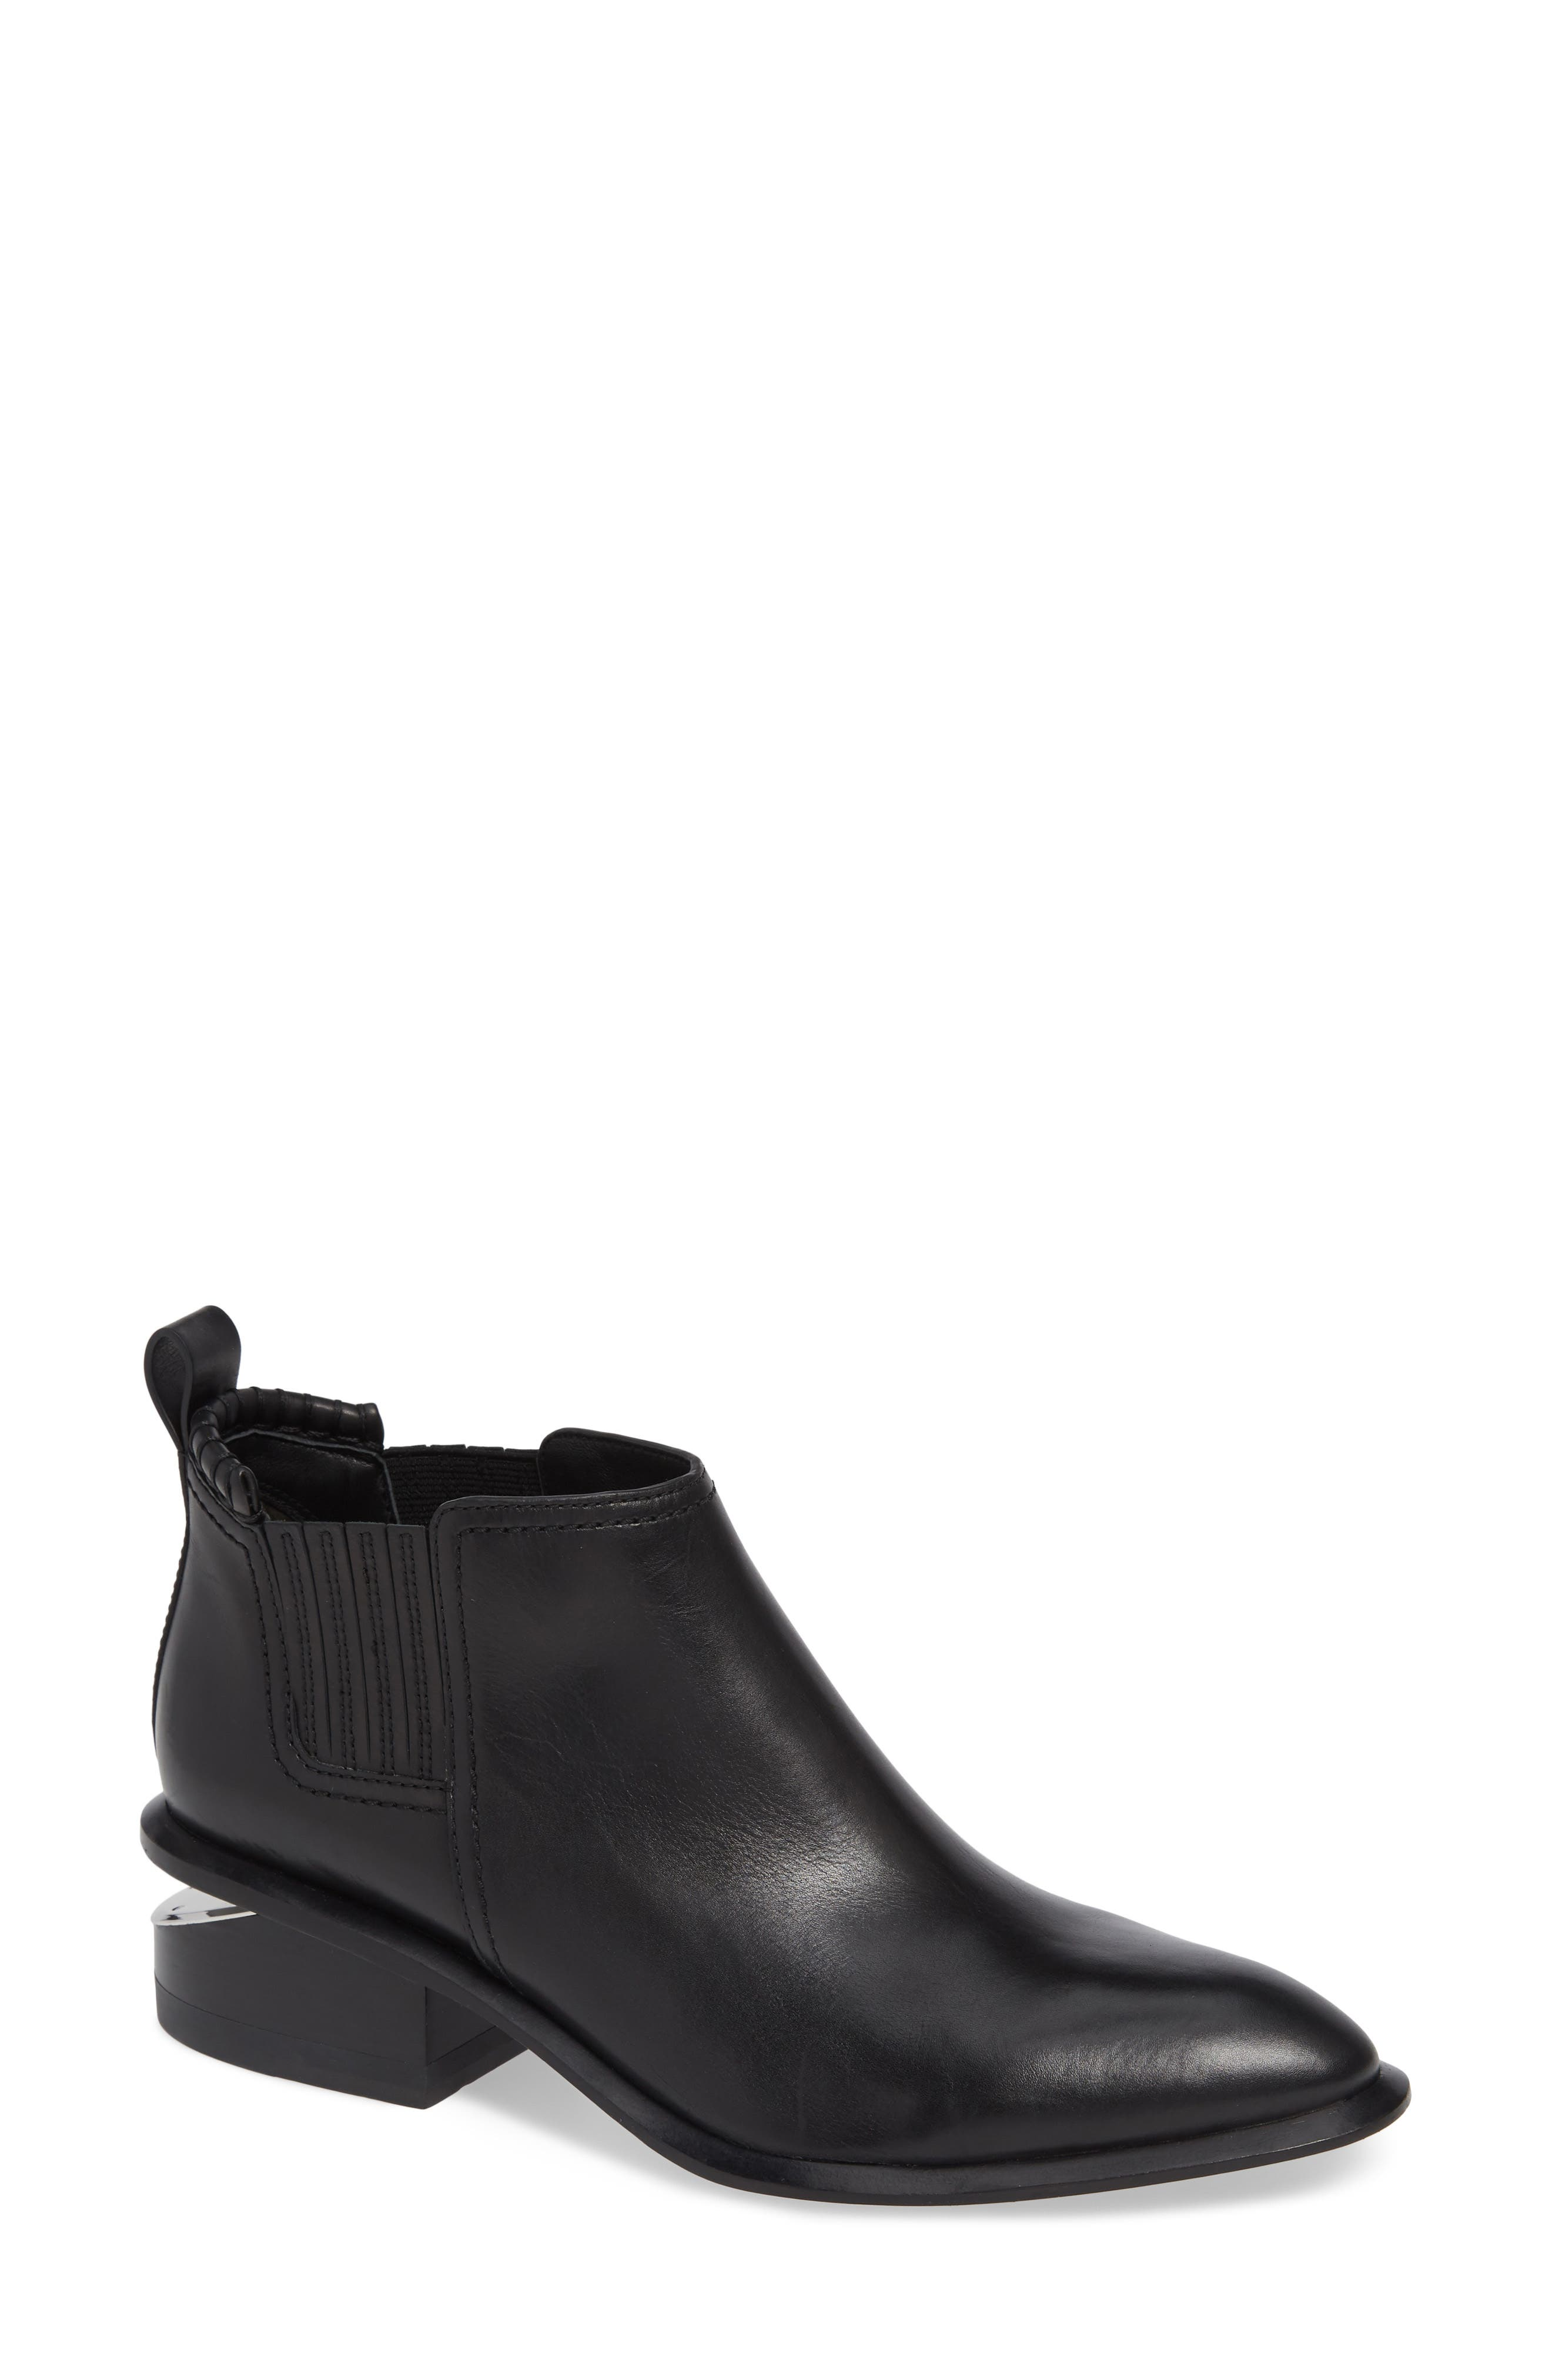 ALEXANDER WANG, Kori Boot, Main thumbnail 1, color, BLACK/ SILVER